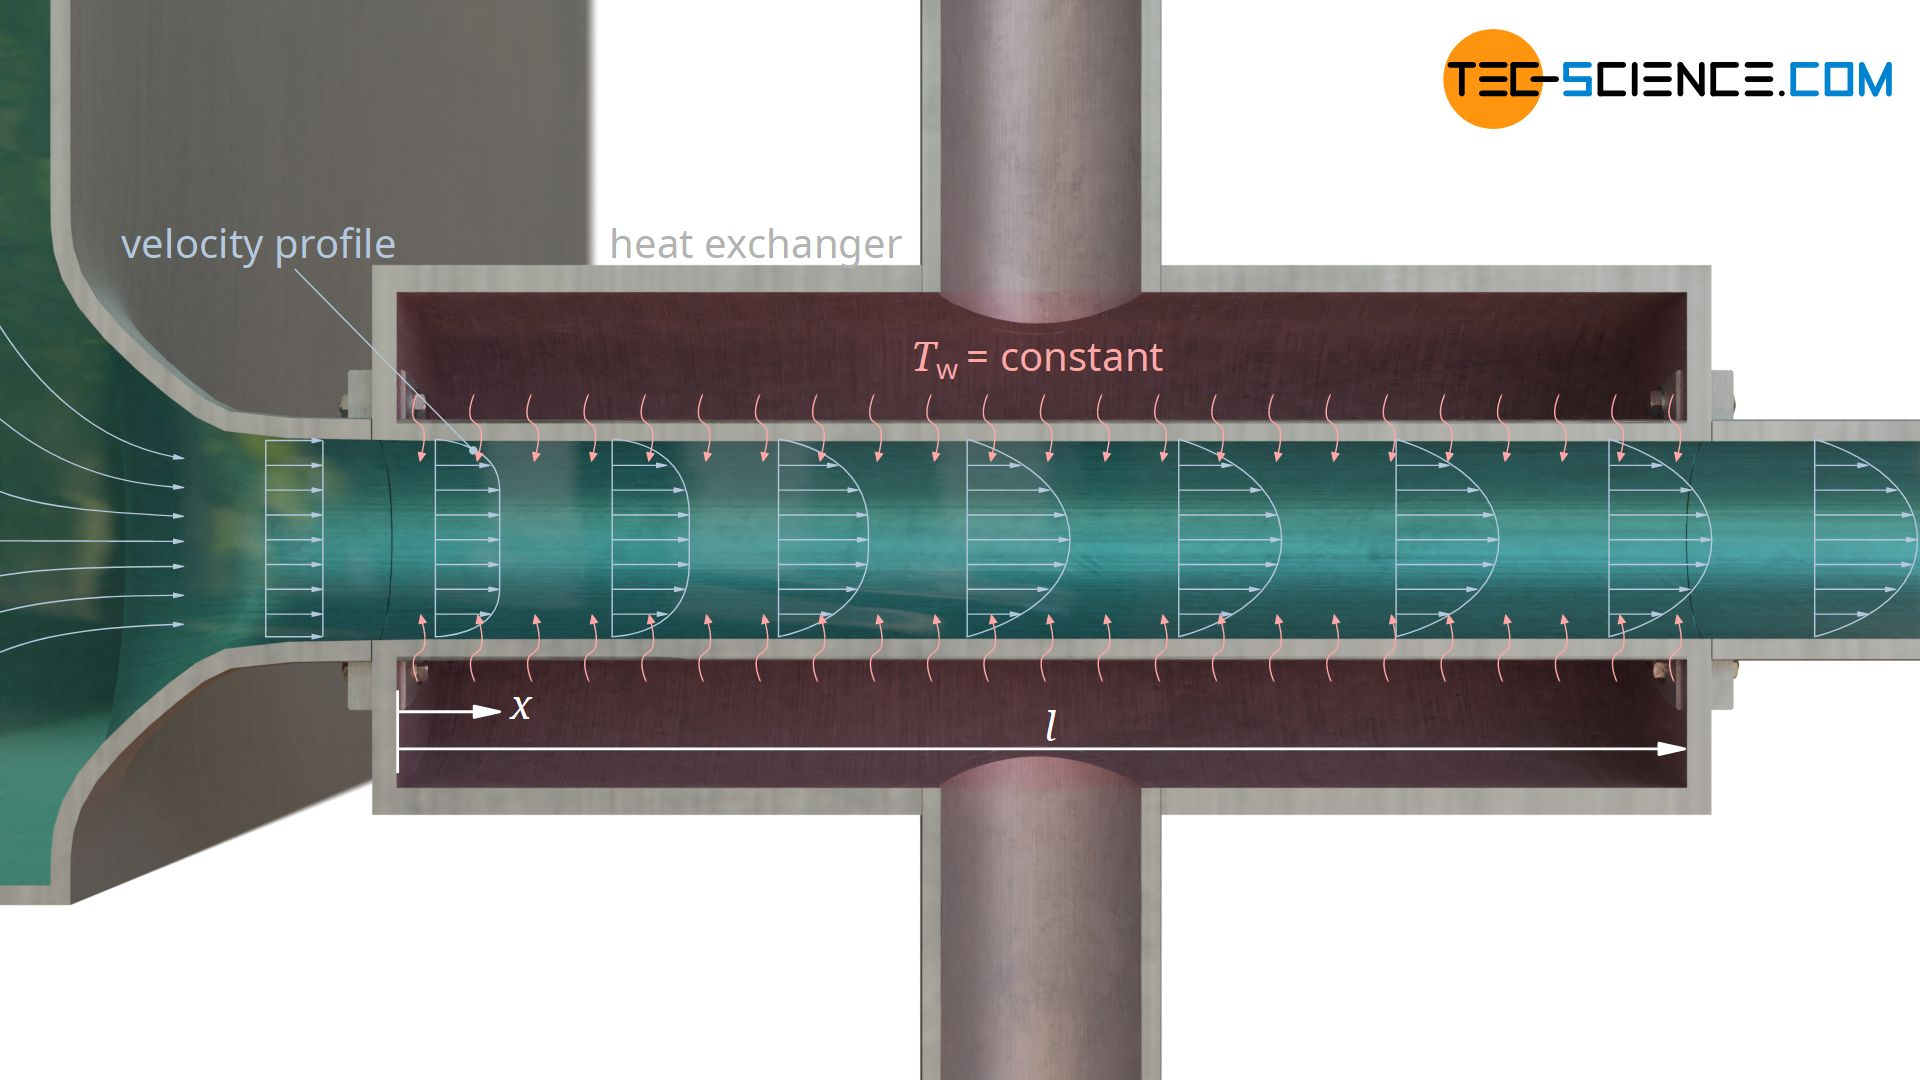 Convective heat transfer with a hydrodynamically not fully developed flow and constant wall temperature